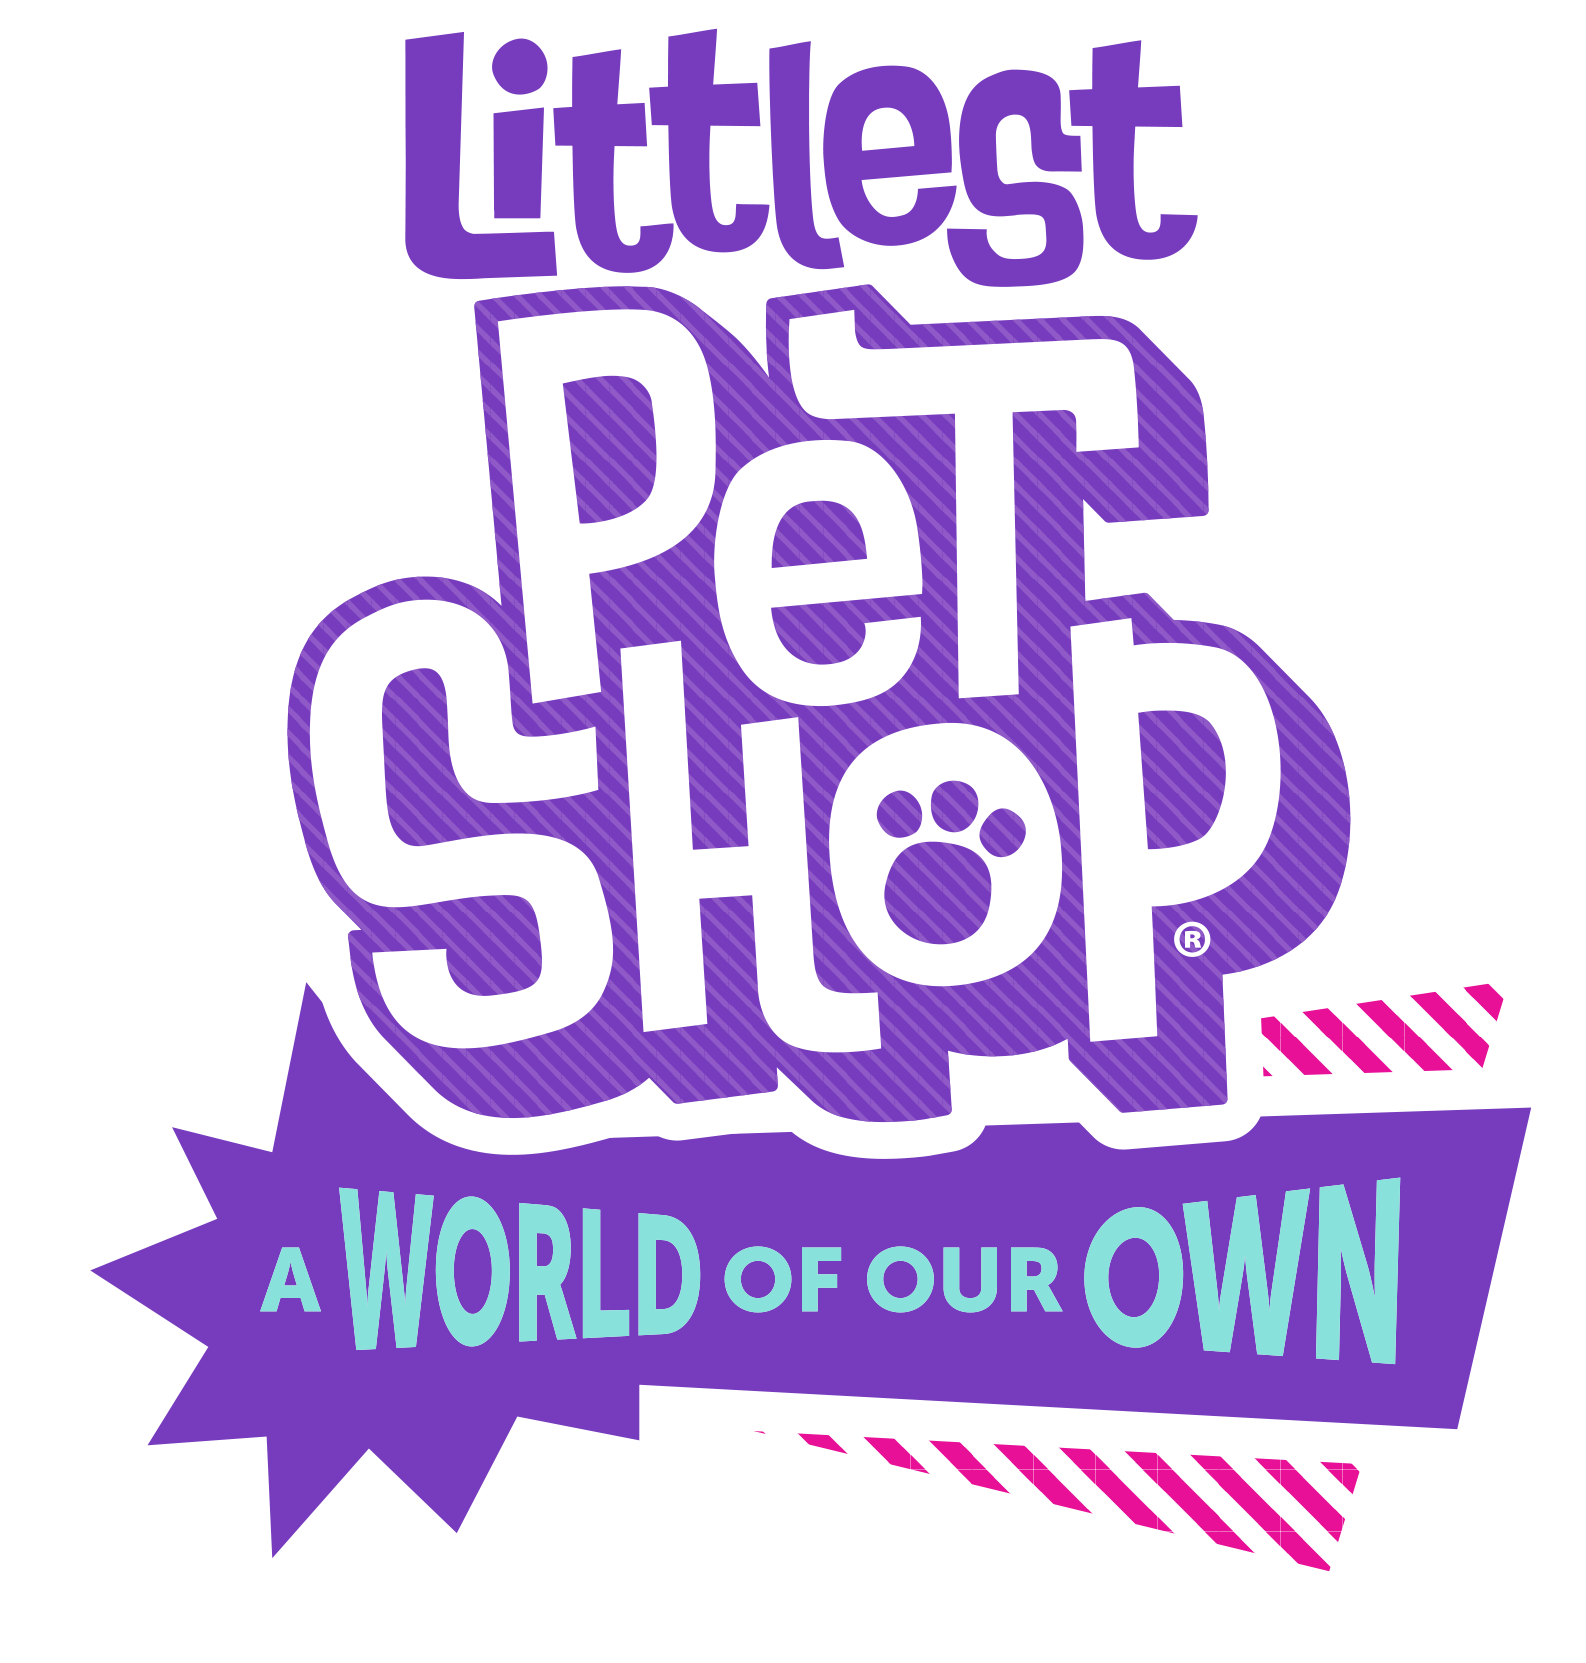 File:Littlest Pet Shop A World of Our Own logo.png.